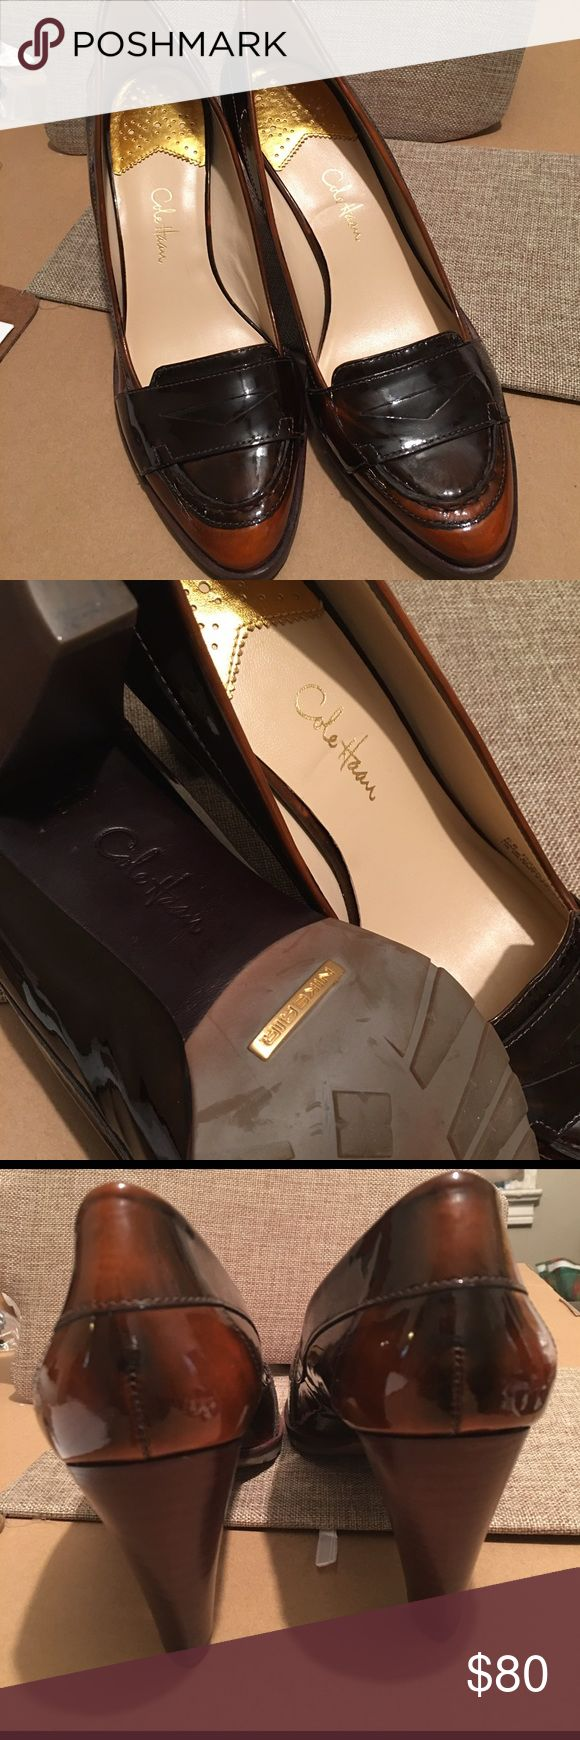 Cole Haan Shoes New never worn, Cole Hann Shoe... 3 1/2 ' heel  Listing FIRM. thank you! Cole Haan Shoes Heels